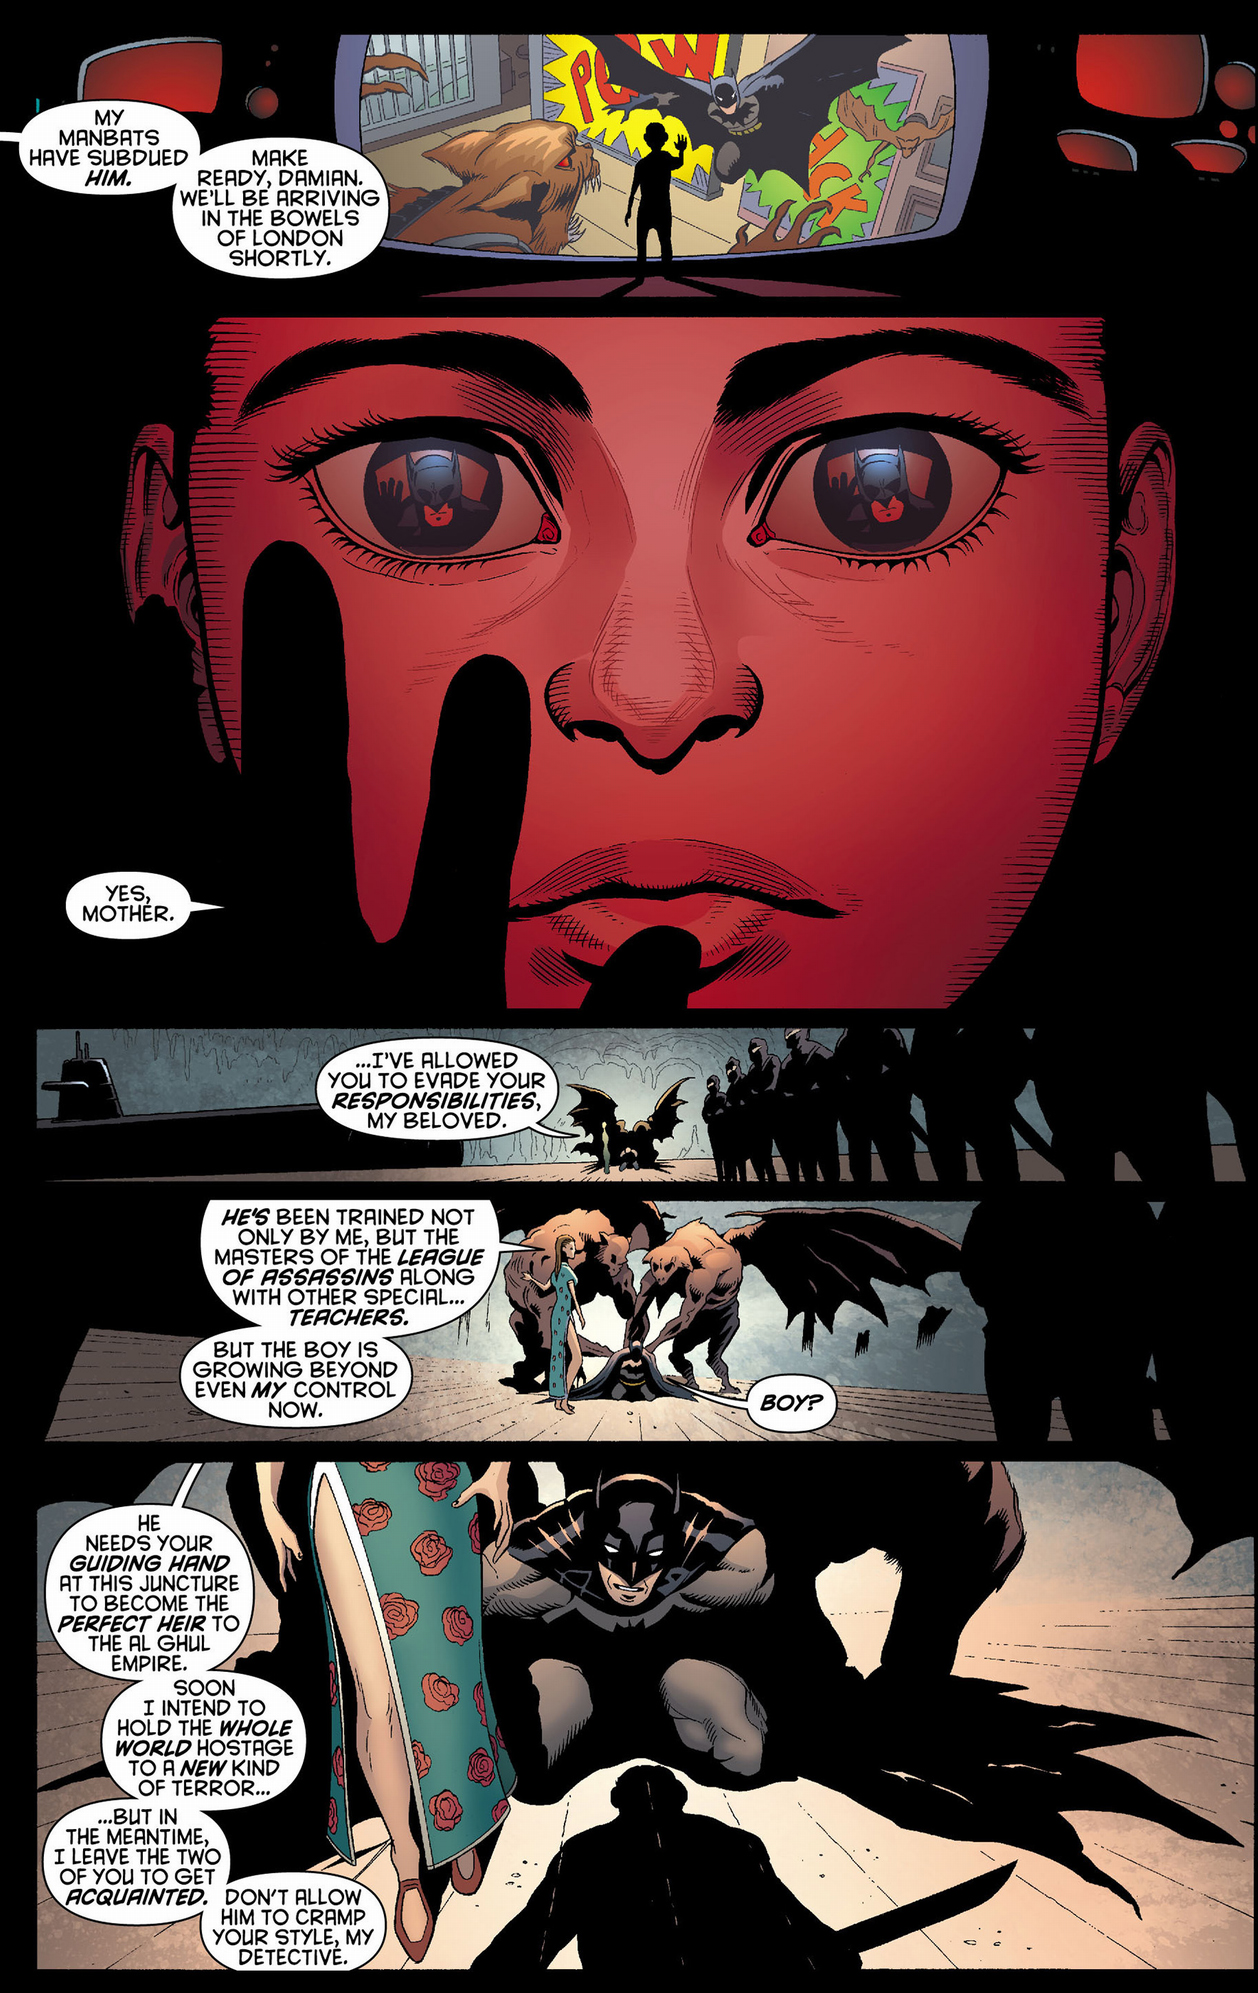 Yoda Wallpaper Quotes Damian Wayne S First Meeting With His Father Comicnewbies